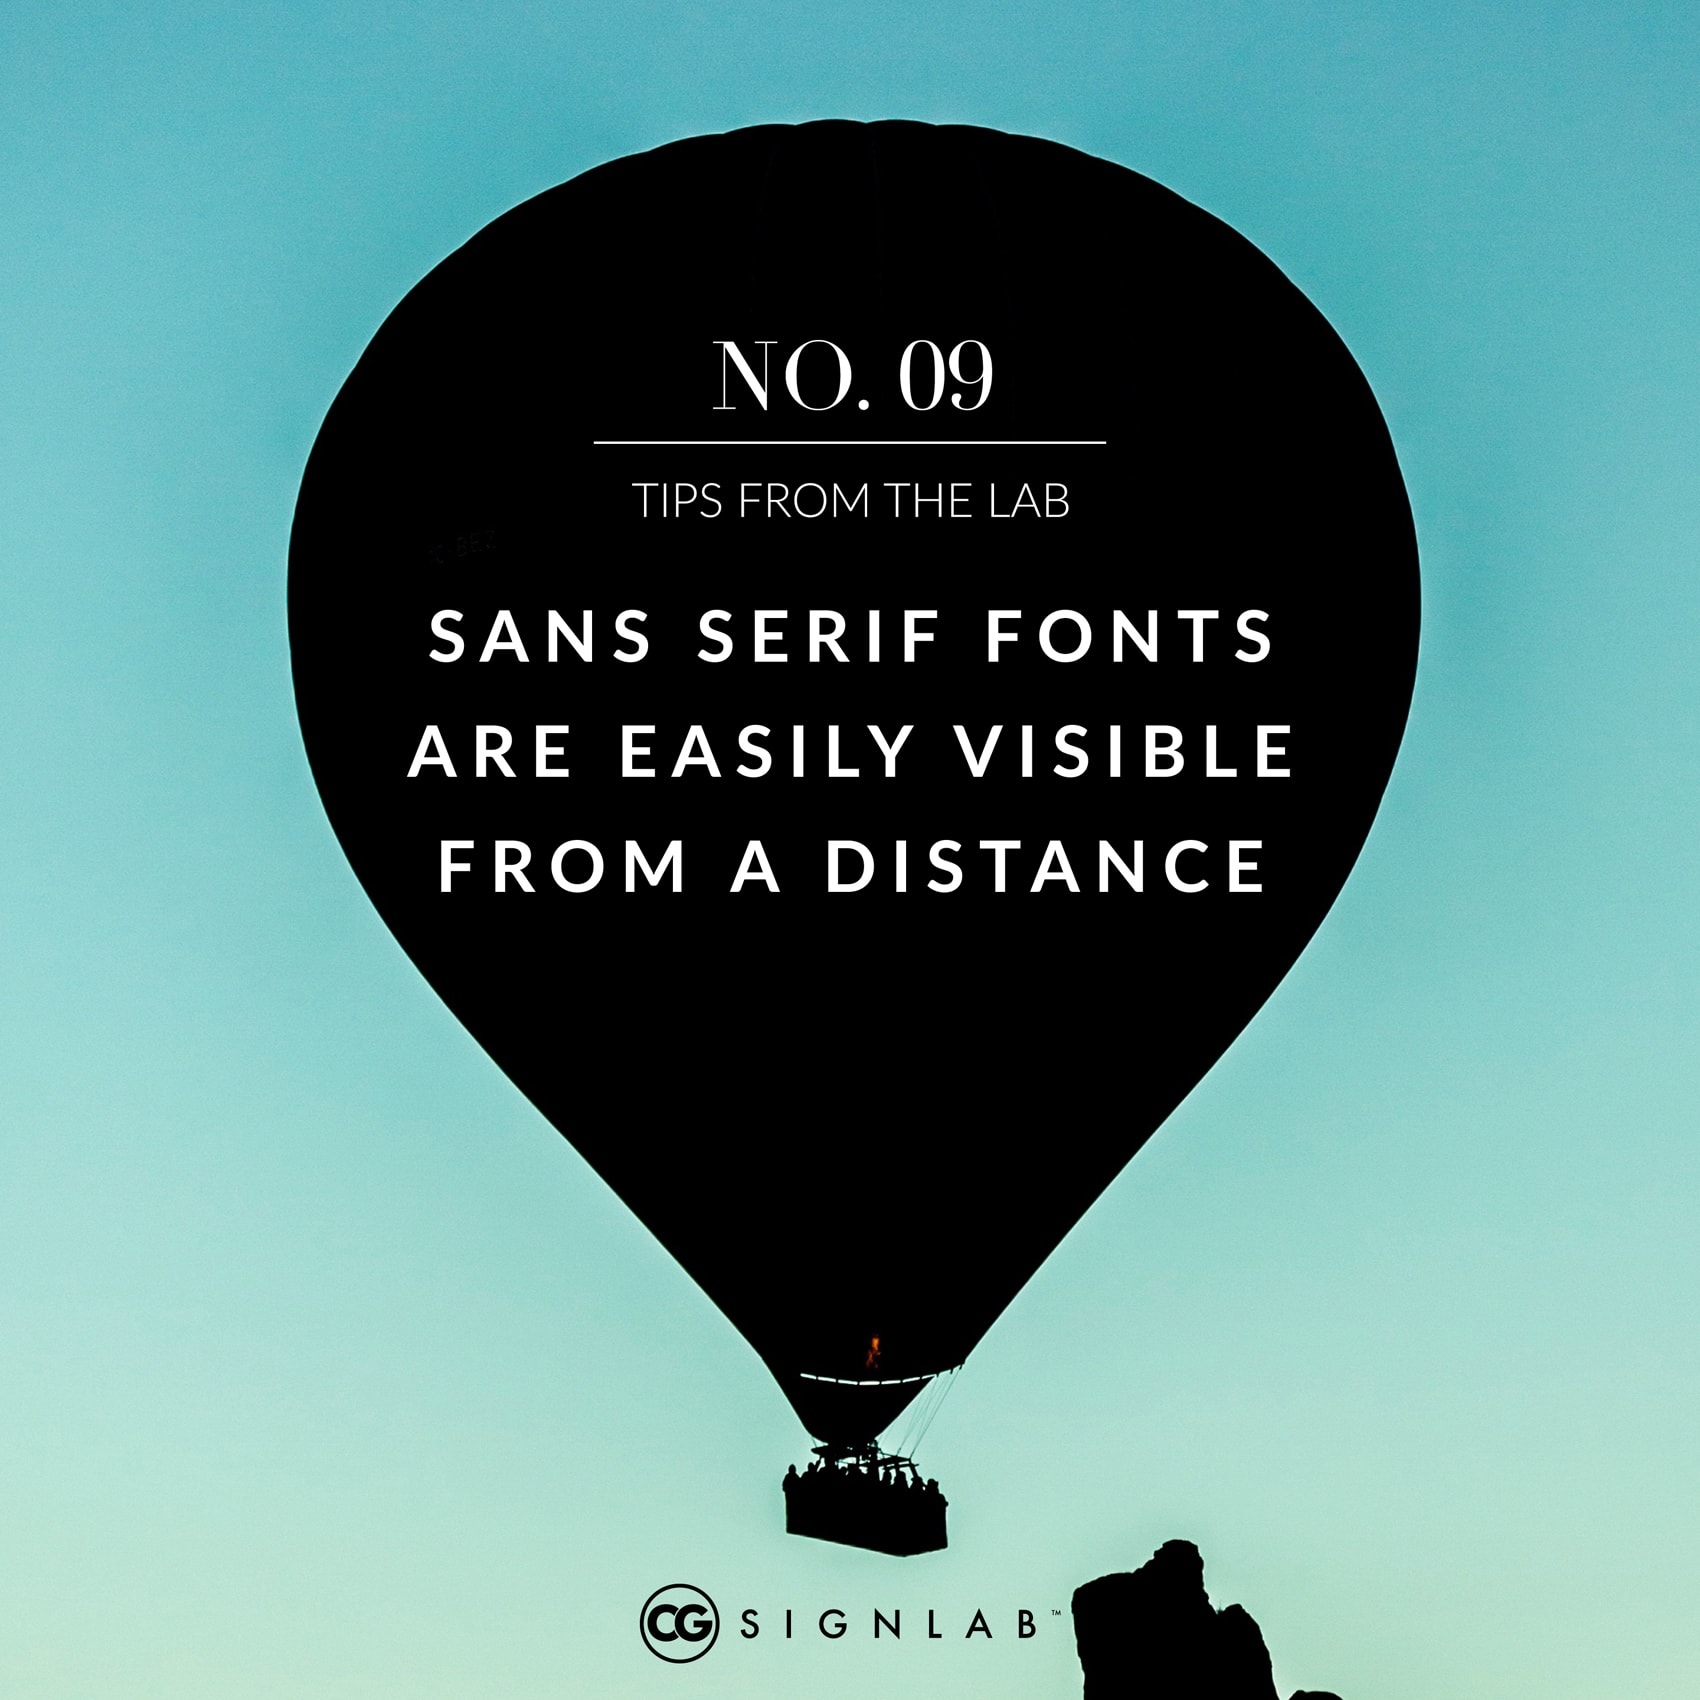 Sans Serif Fonts are Easily Visible from a Distance